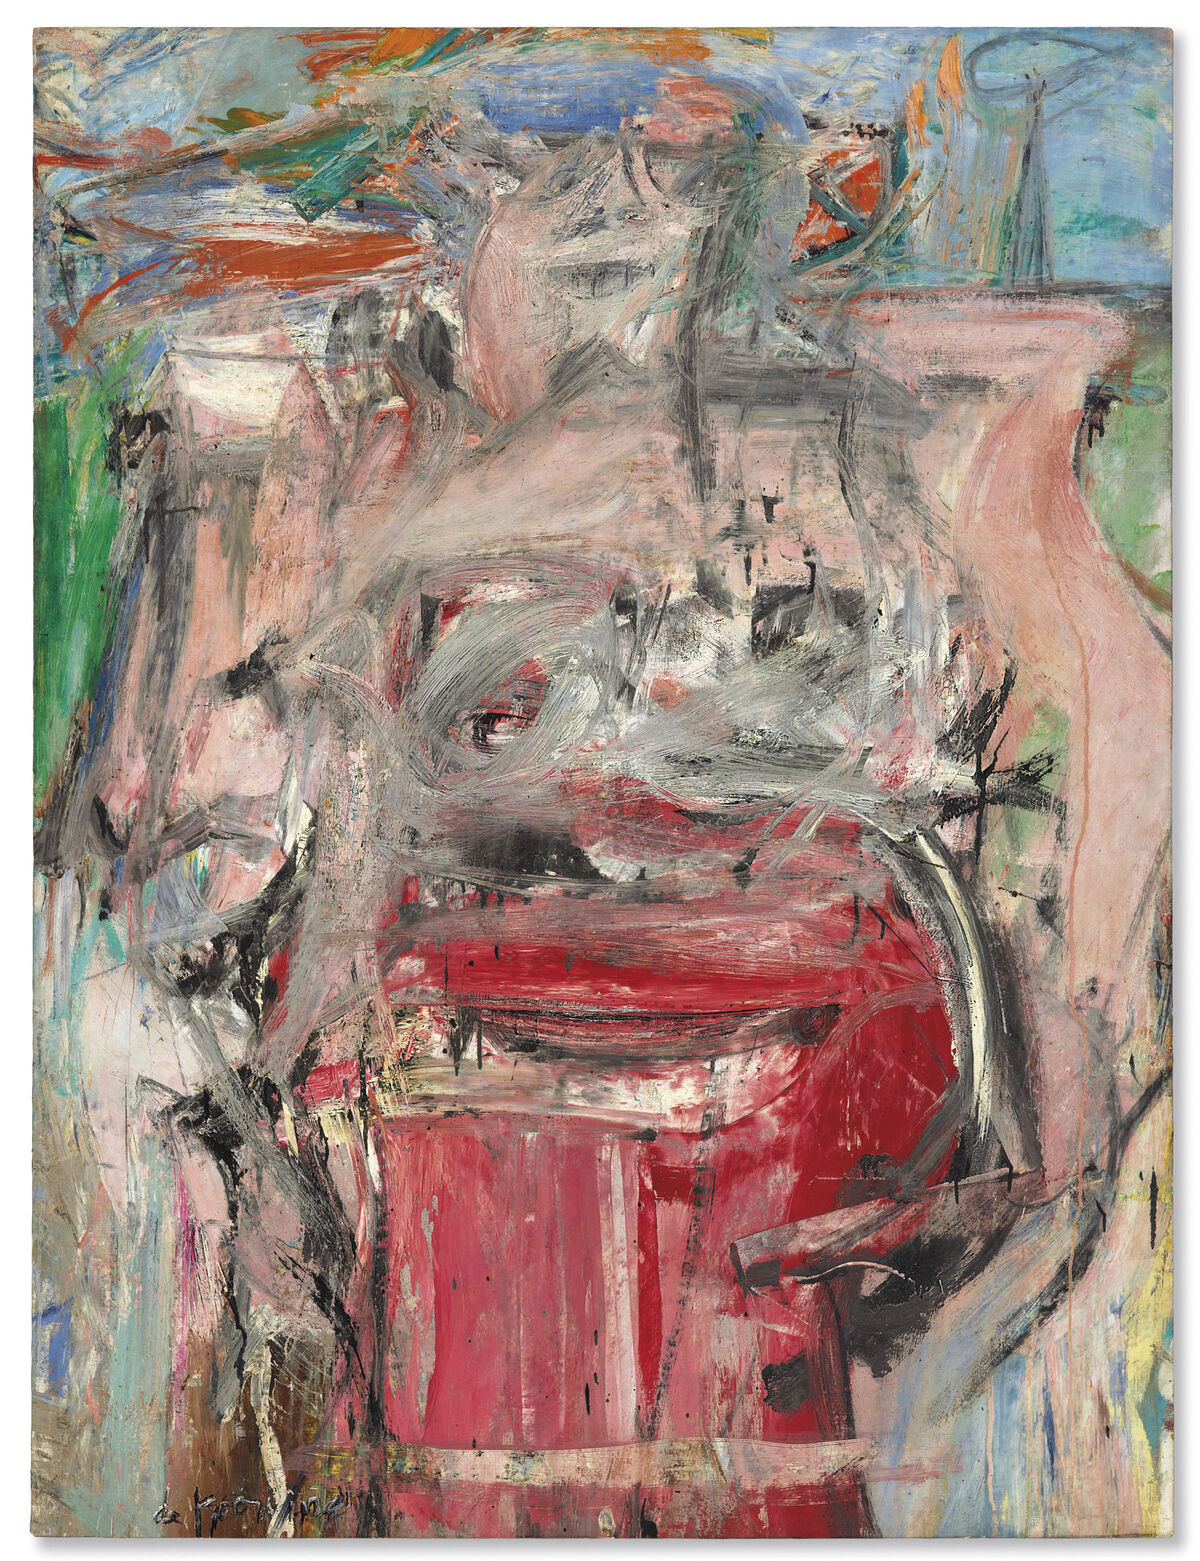 Willem de Kooning, Woman as Landscape, circa 1954-55. Courtesy of Christie's.